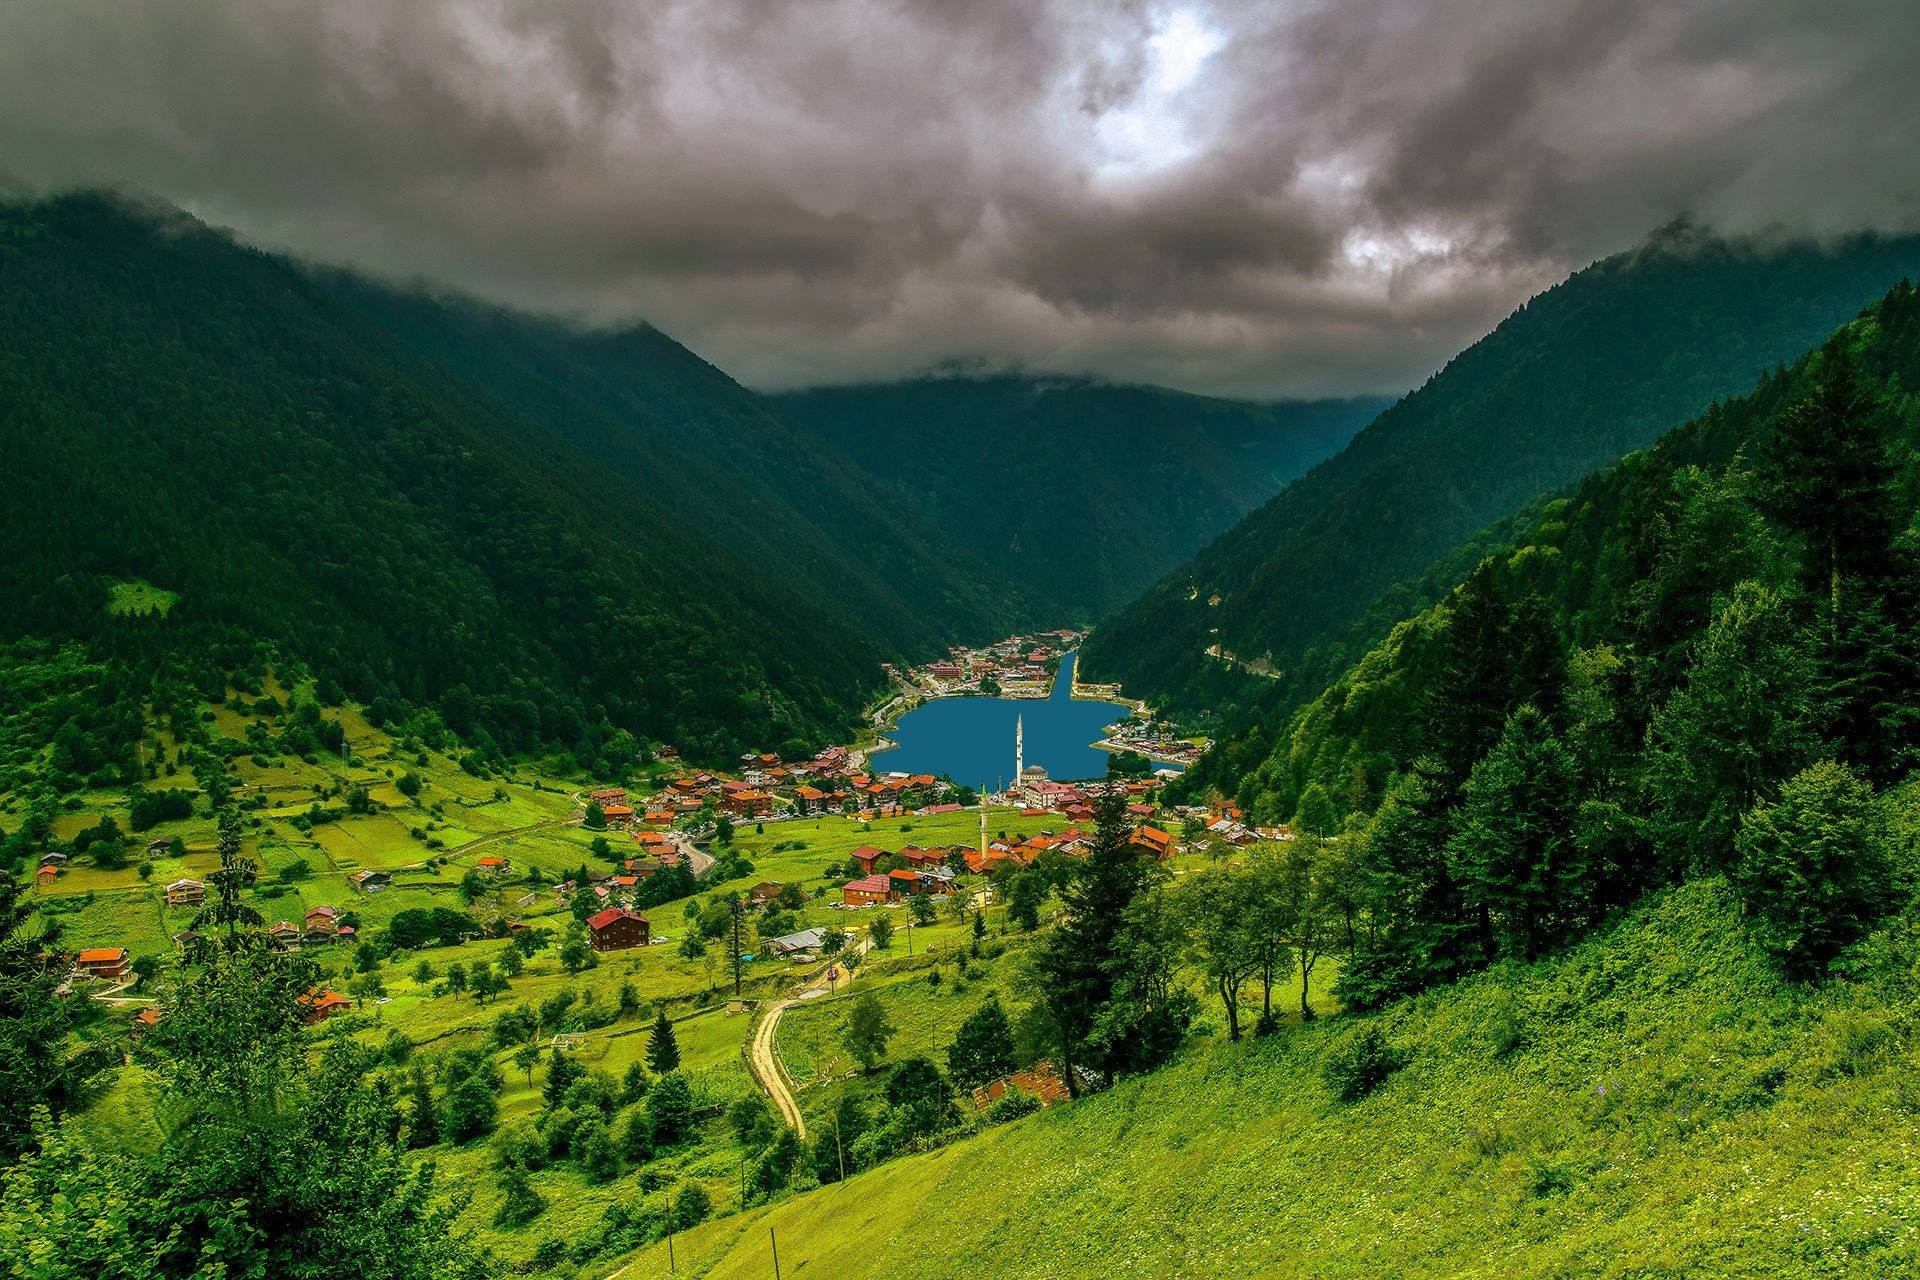 1920x1280 Karagol Sky Turkey Landscape Horror Nature Artvin Background Images Mountain Lake Amazing Hd Wallpapers Mather Beauty